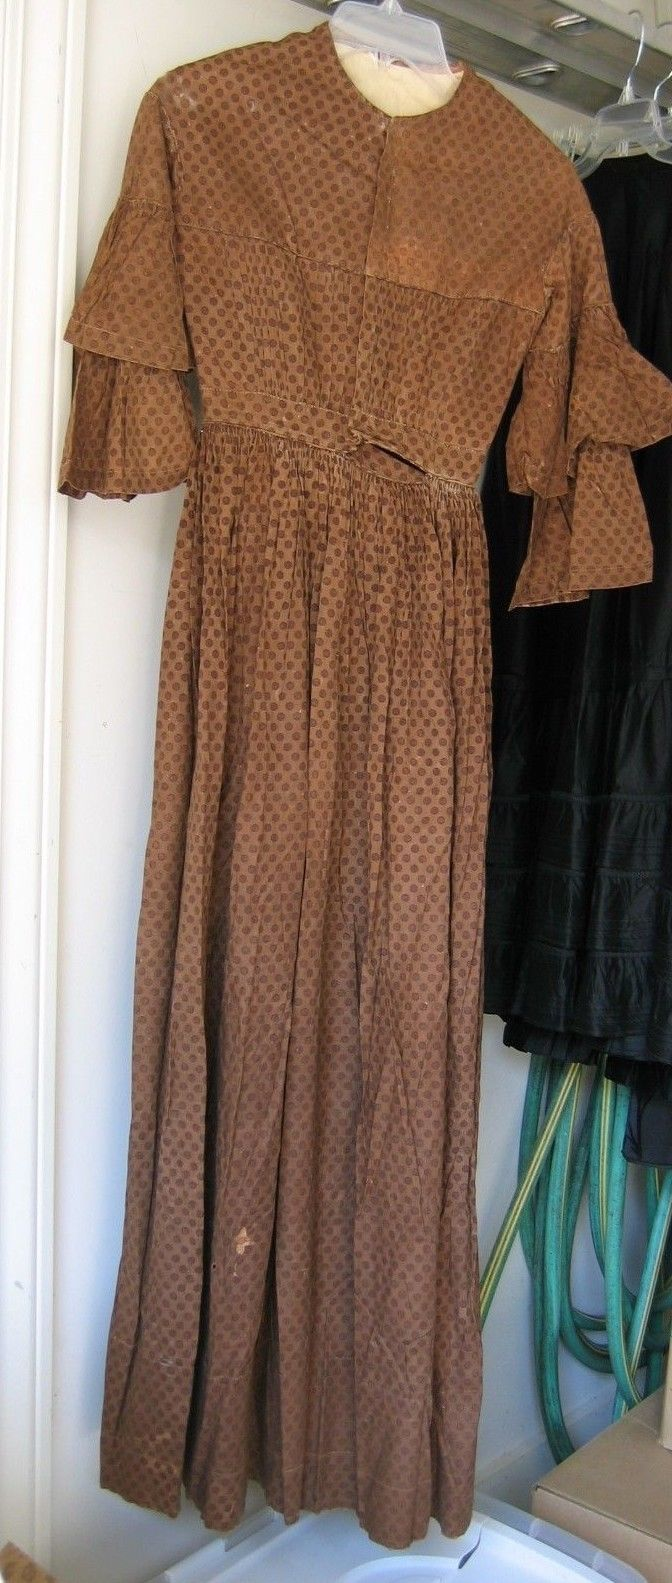 Civil War Pioneer Calico Cotton Prairie Dress 1800 S True Vintage All Hand Sewn In Clothing Shoes Accessories Women